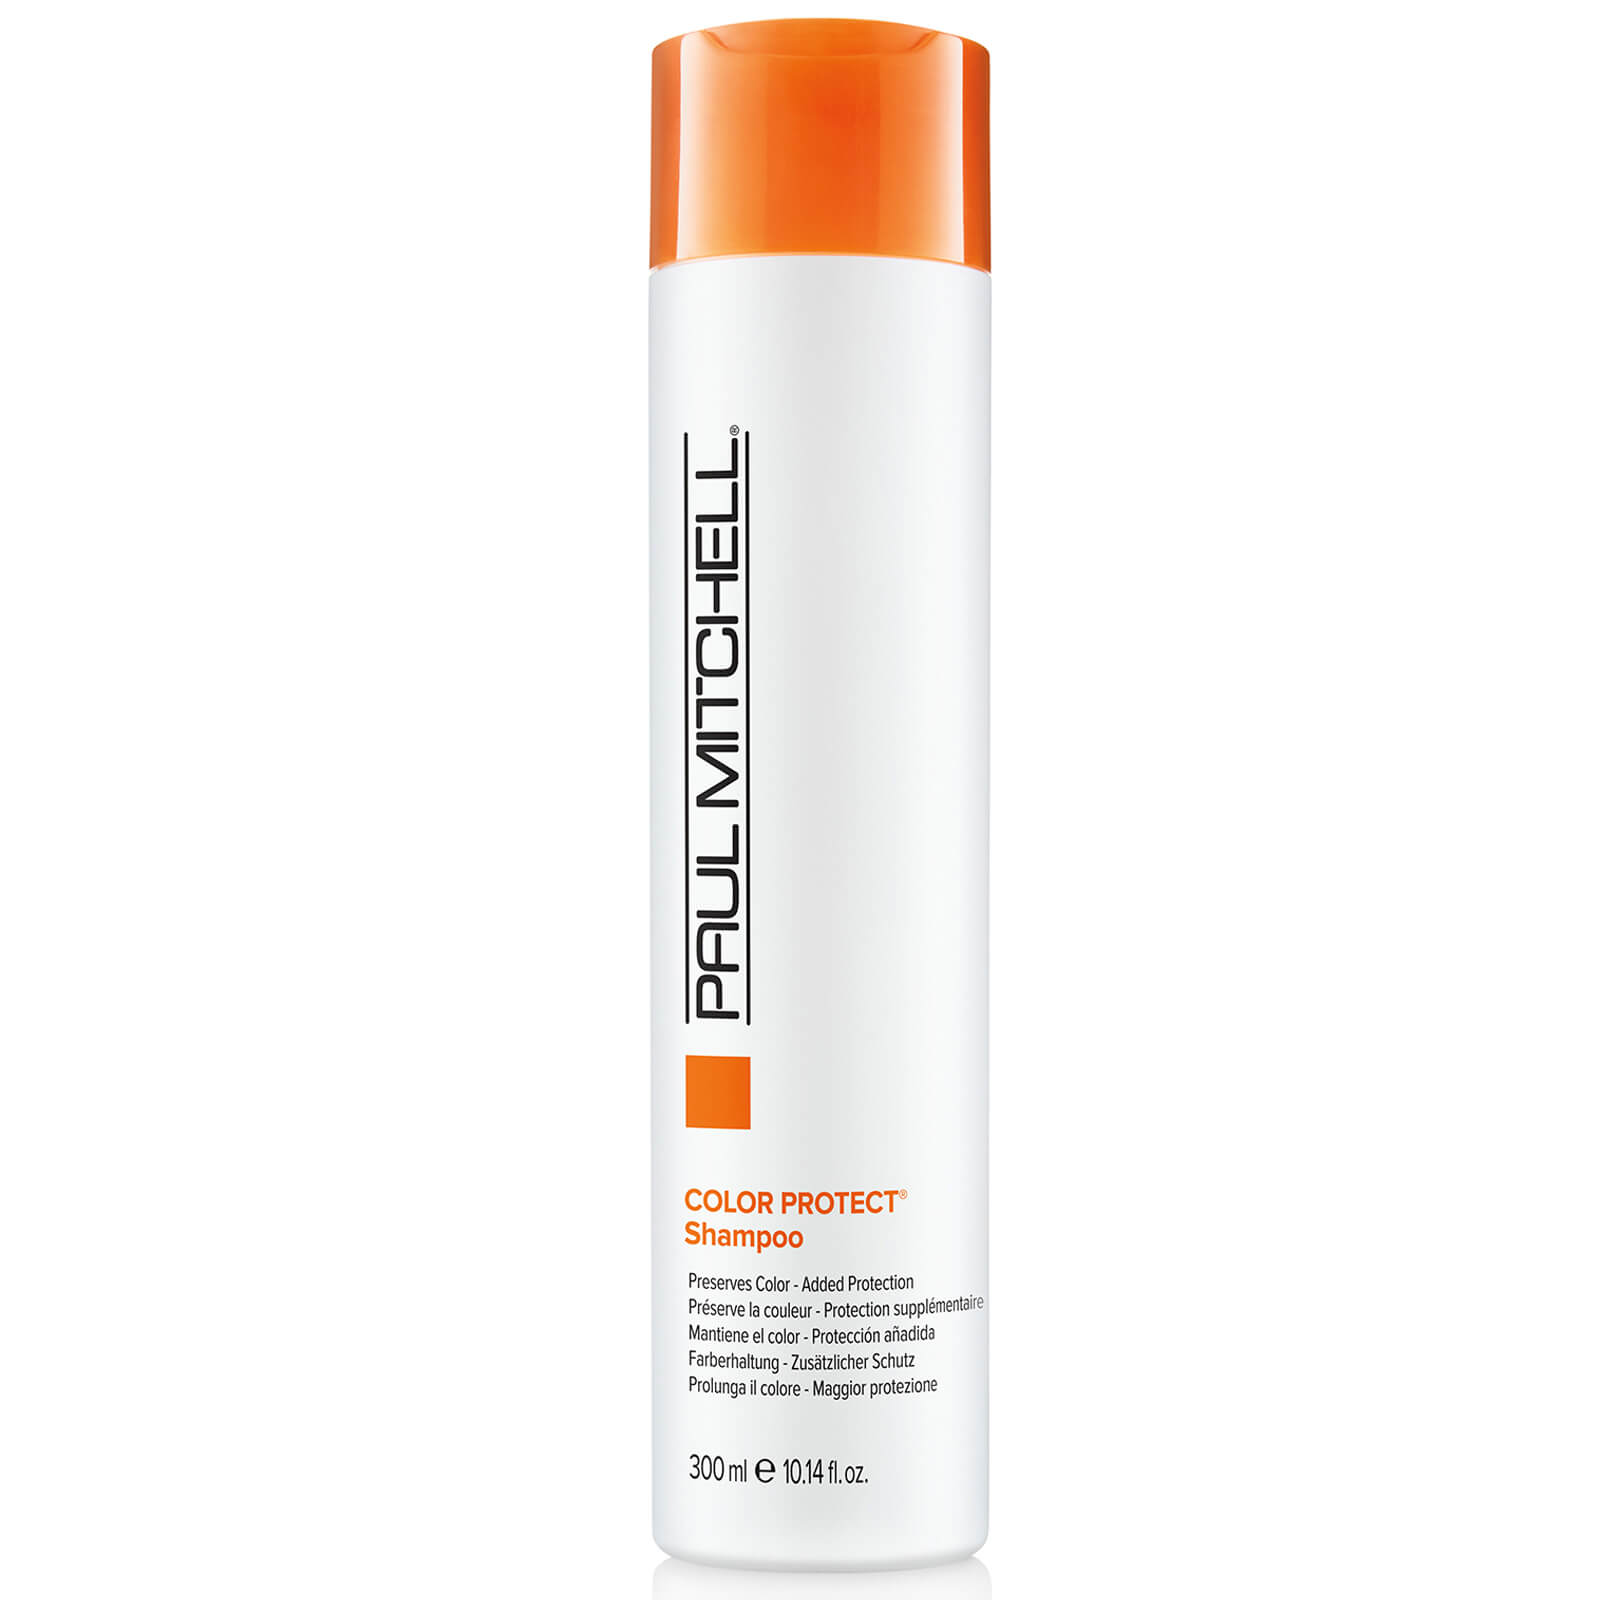 Paul Mitchell Color Protect Daily Shampoo - 300ml